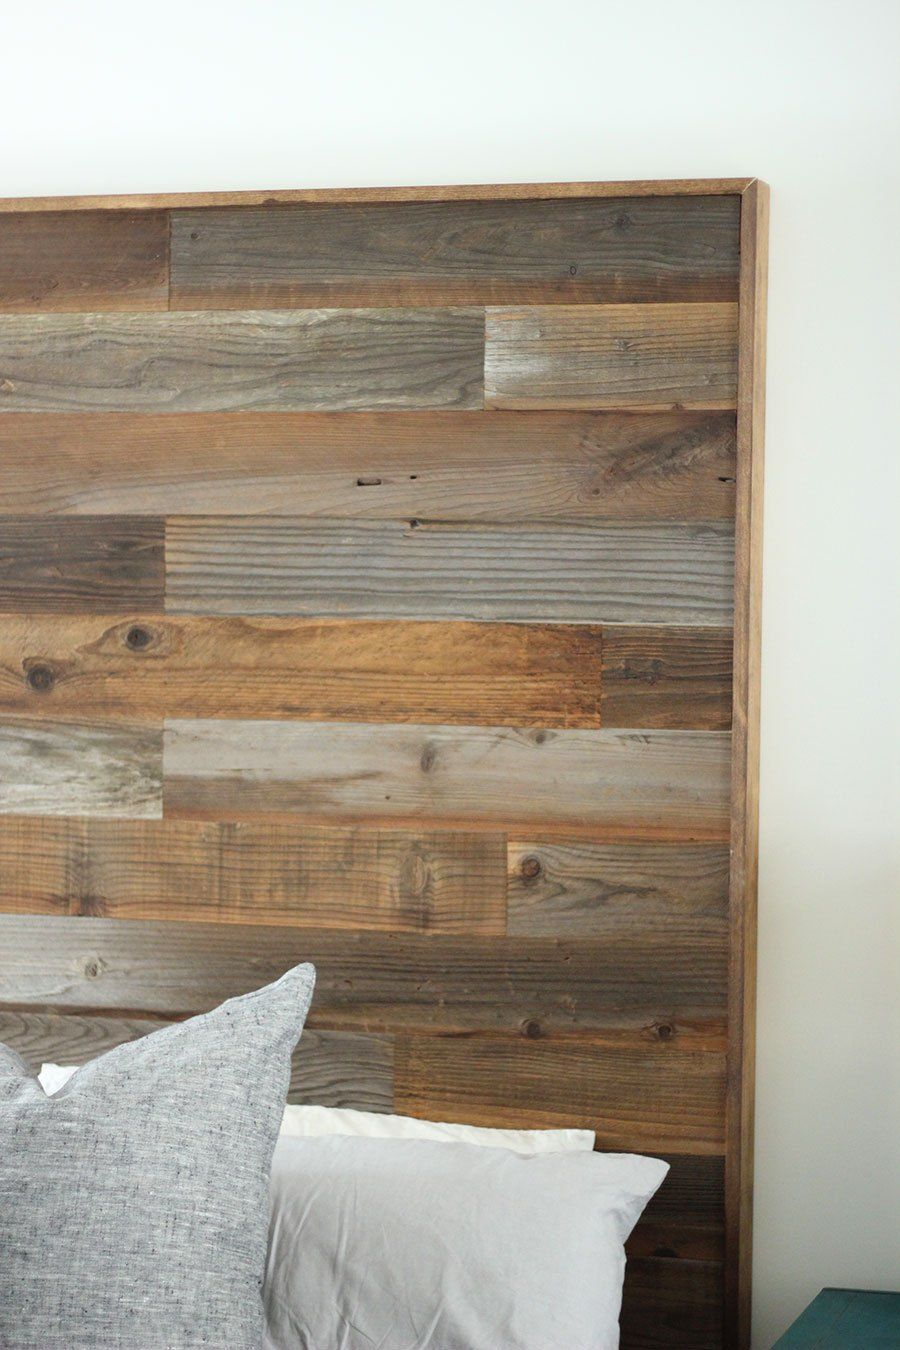 How to make a DIY Wooden Headboard Rustic wooden